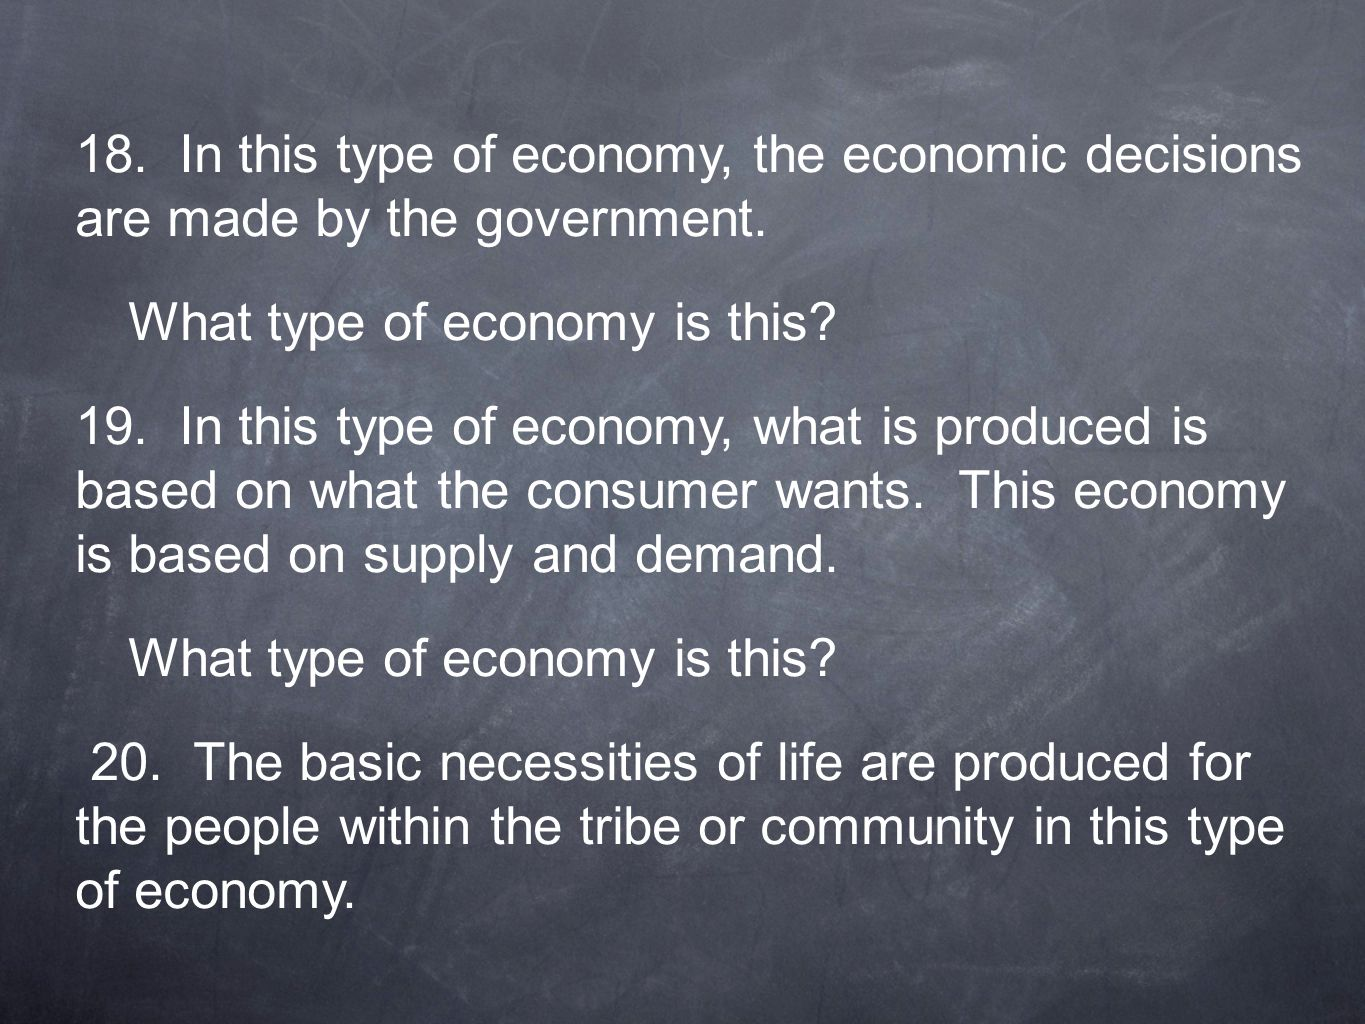 18. In this type of economy, the economic decisions are made by the government.